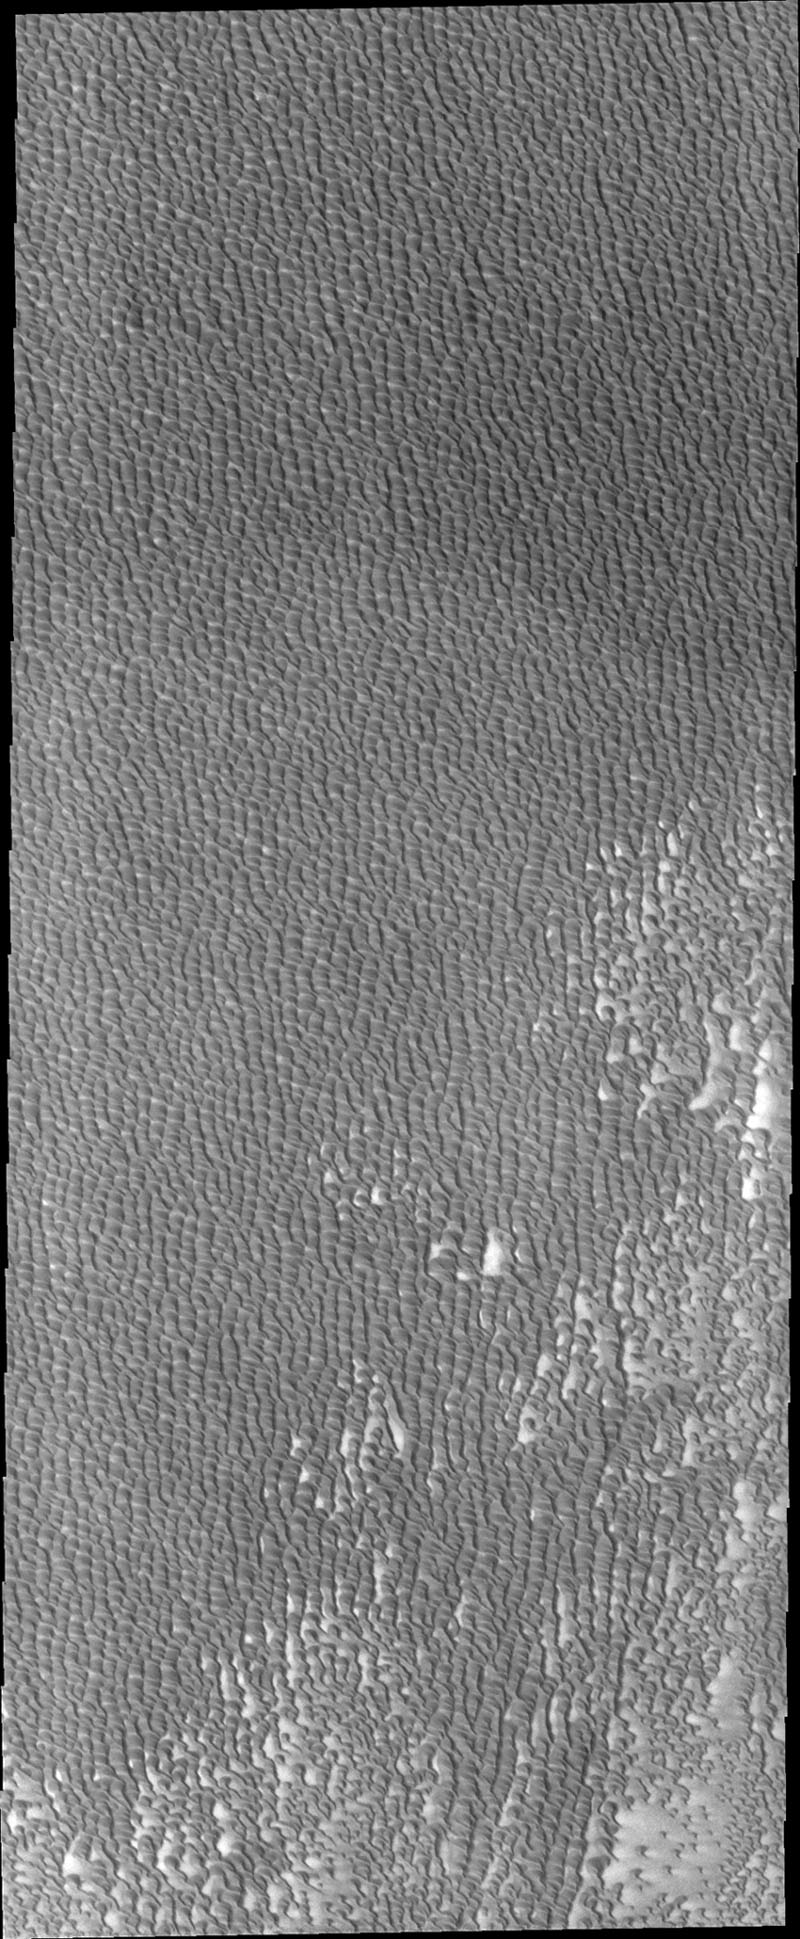 This image from NASA's 2001 Mars Odyssey spacecraft shows Siton Undae, a large dune field located in the northern plains near Escorial Crater on Mars. This image shows part of the central region of the dune field.